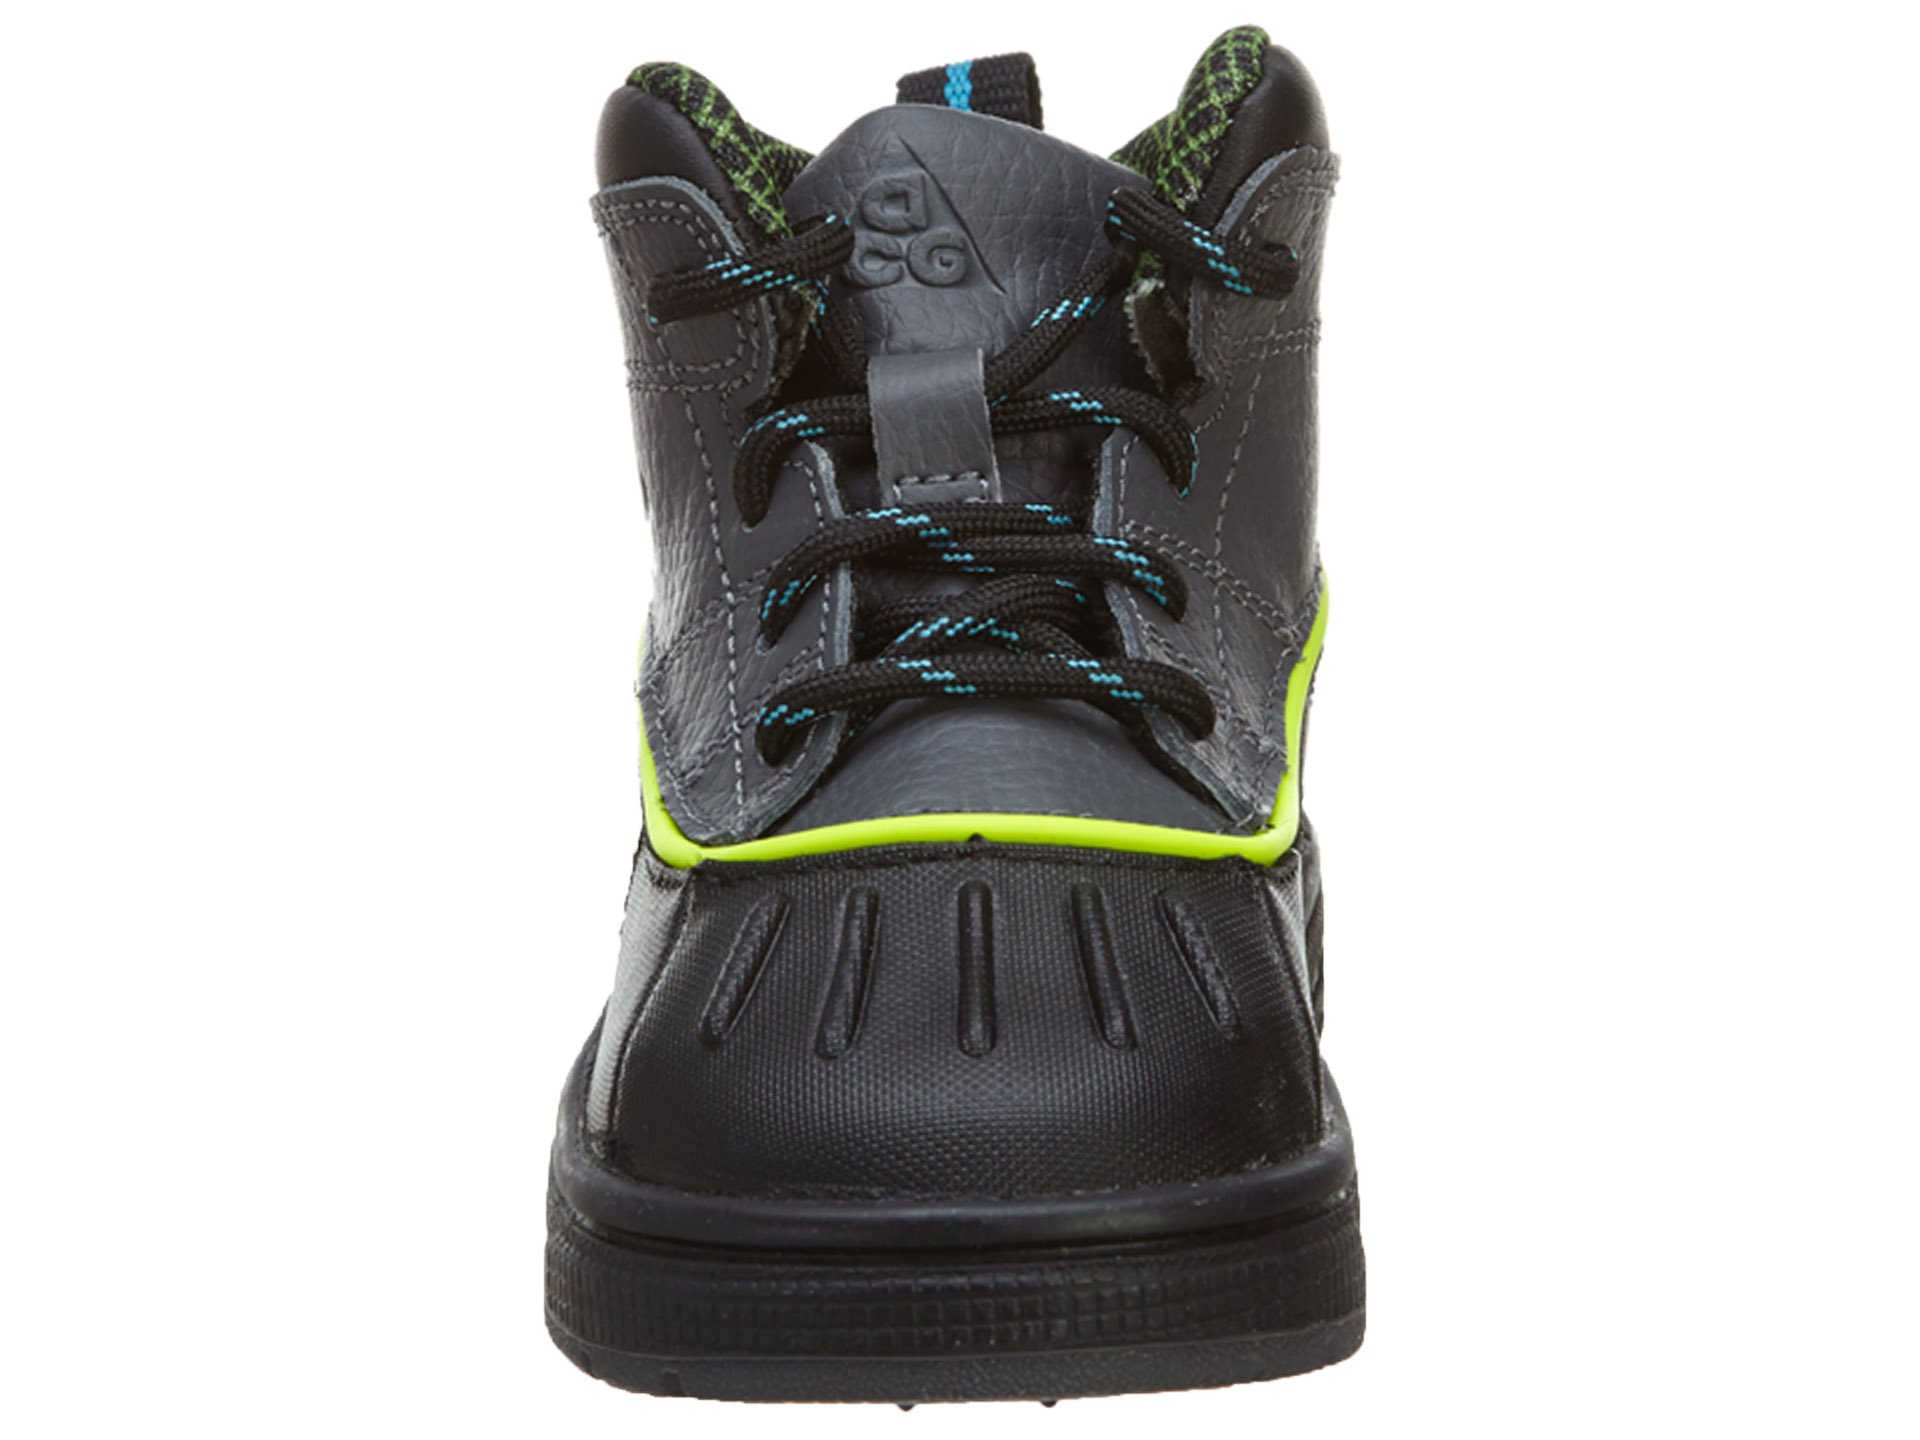 Nike Woodside 2 High (Td) Toddlers Boys/Girls Style: 524874-002 Size: 4 by Nike (Image #5)